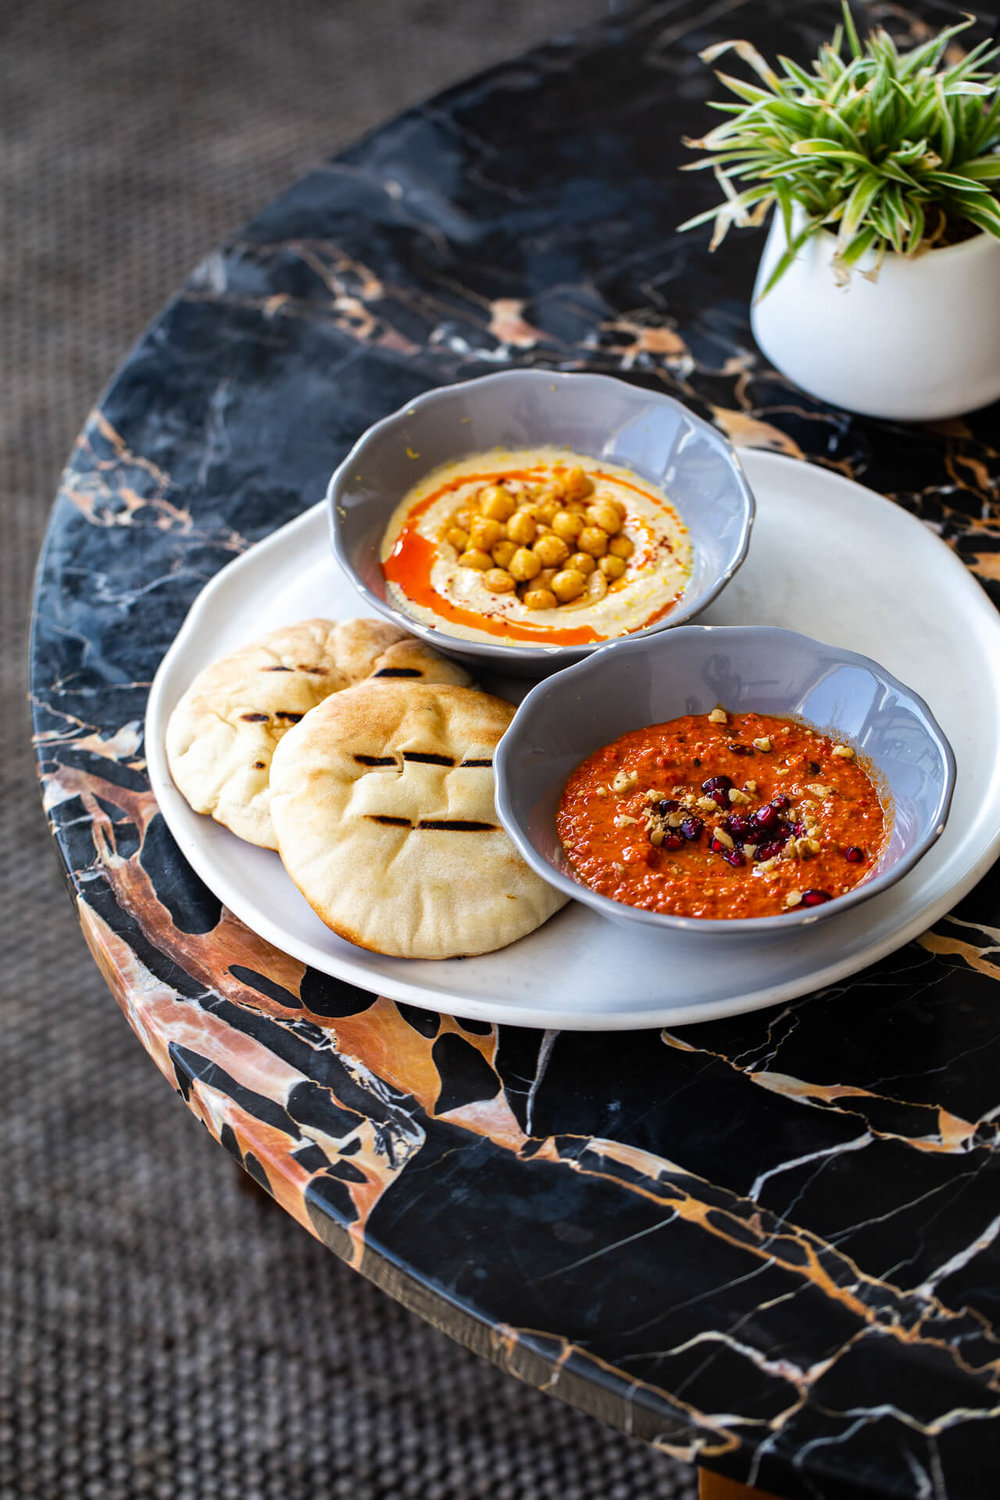 Dips and pitas arrive to satisfy the grumbly tummies of our wandering travelers at Rayla.